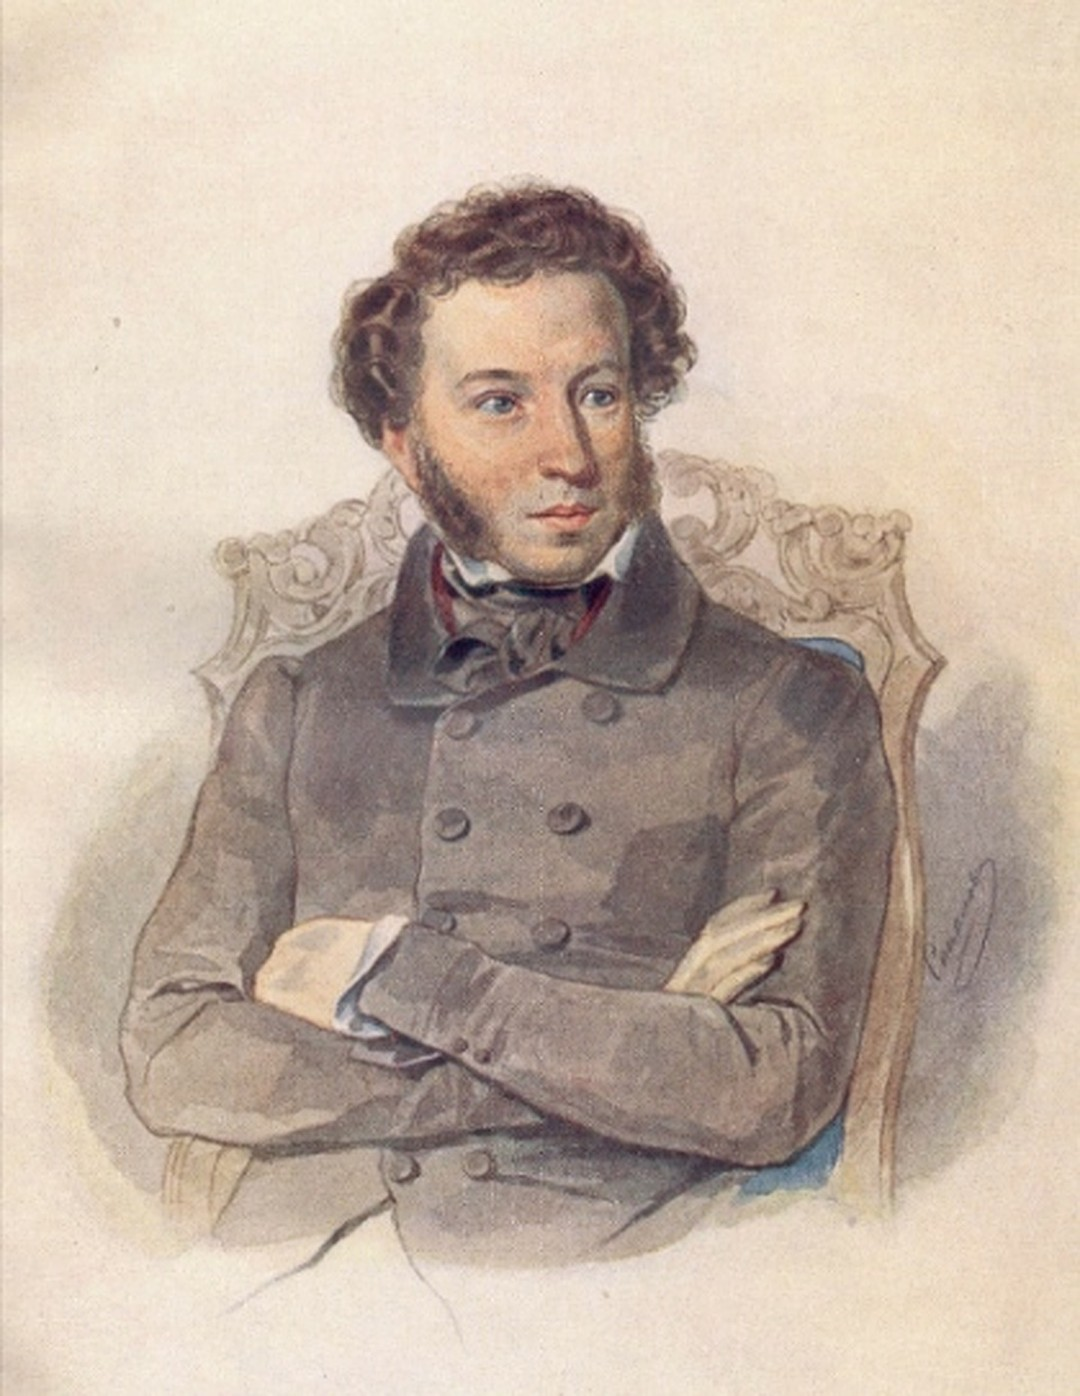 http://upload.wikimedia.org/wikipedia/commons/c/cb/Pushkin_Alexander_by_Sokolov_P..jpg